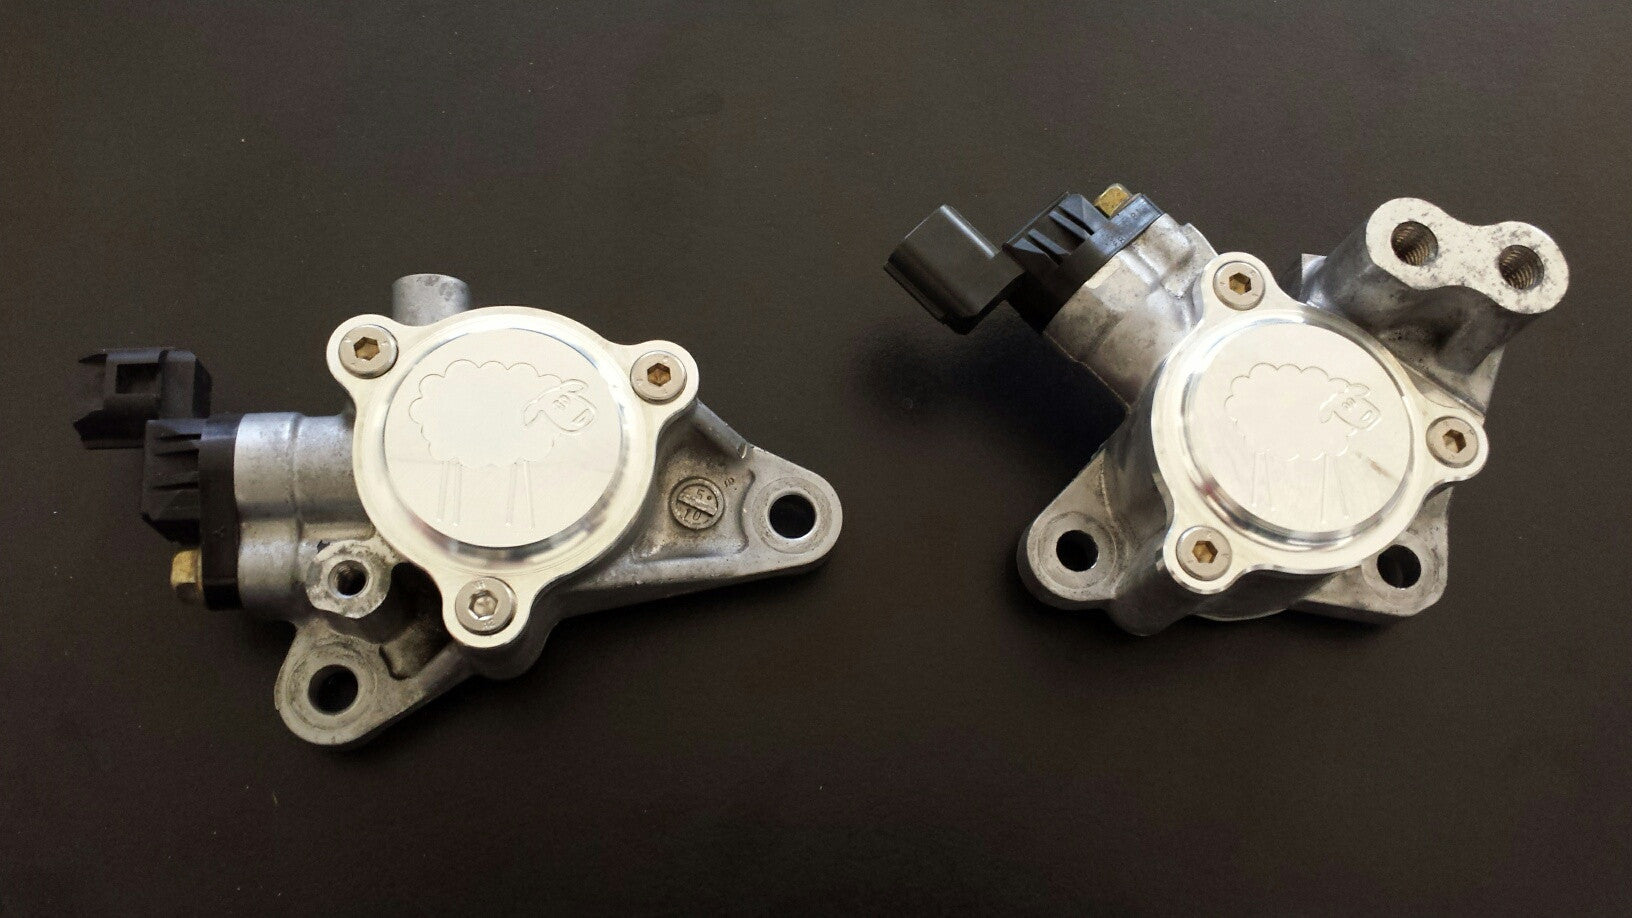 Sheepey Race - Mitsubishi EVO 9 Billet Cam Positioning Sensor & MIVAC Cover Combo